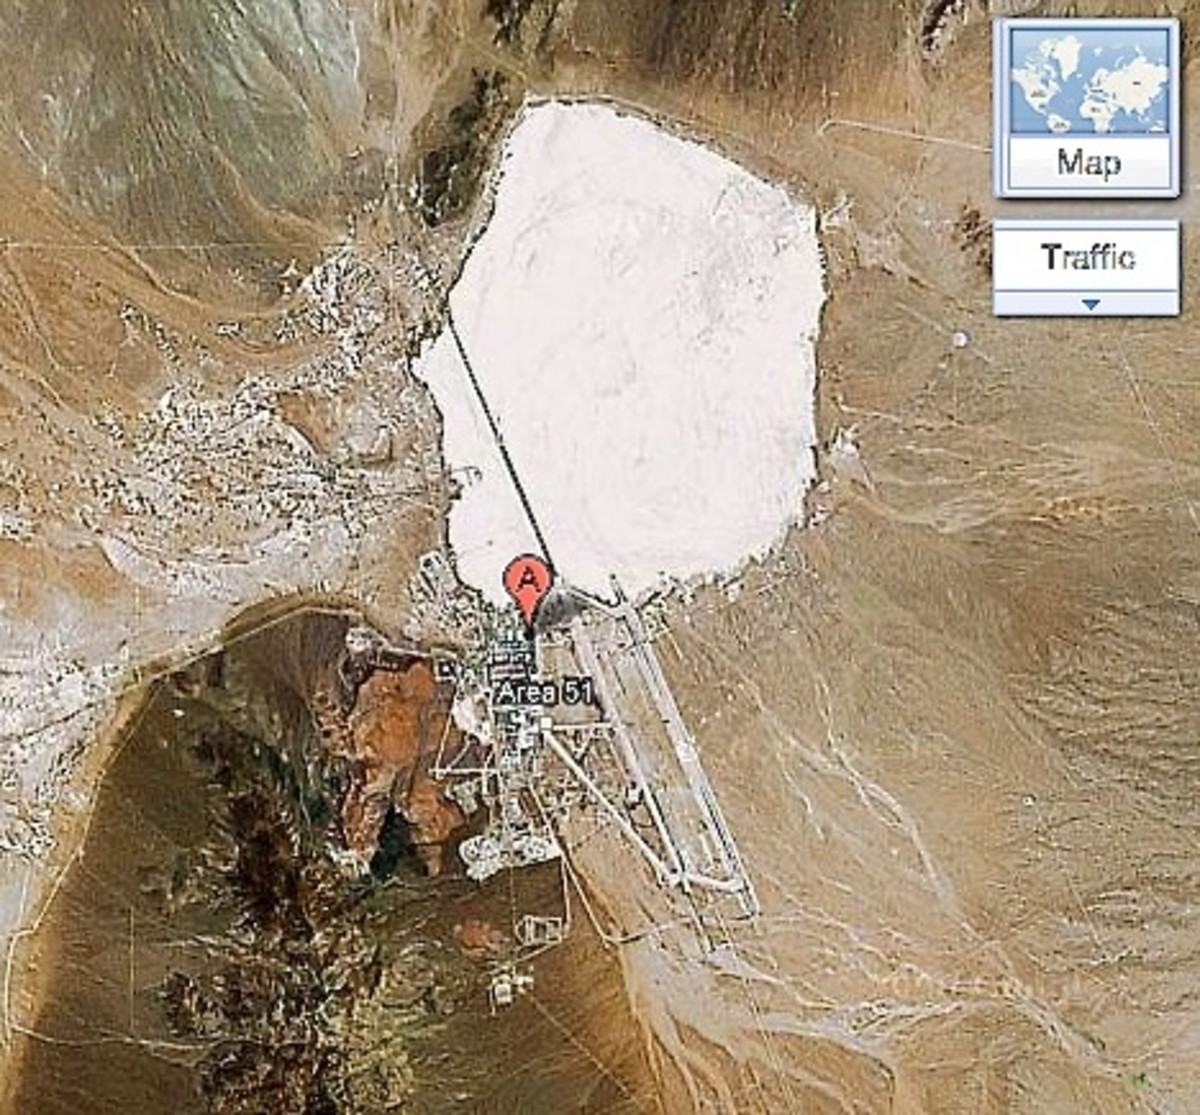 Area 51 for all to see on Google Maps